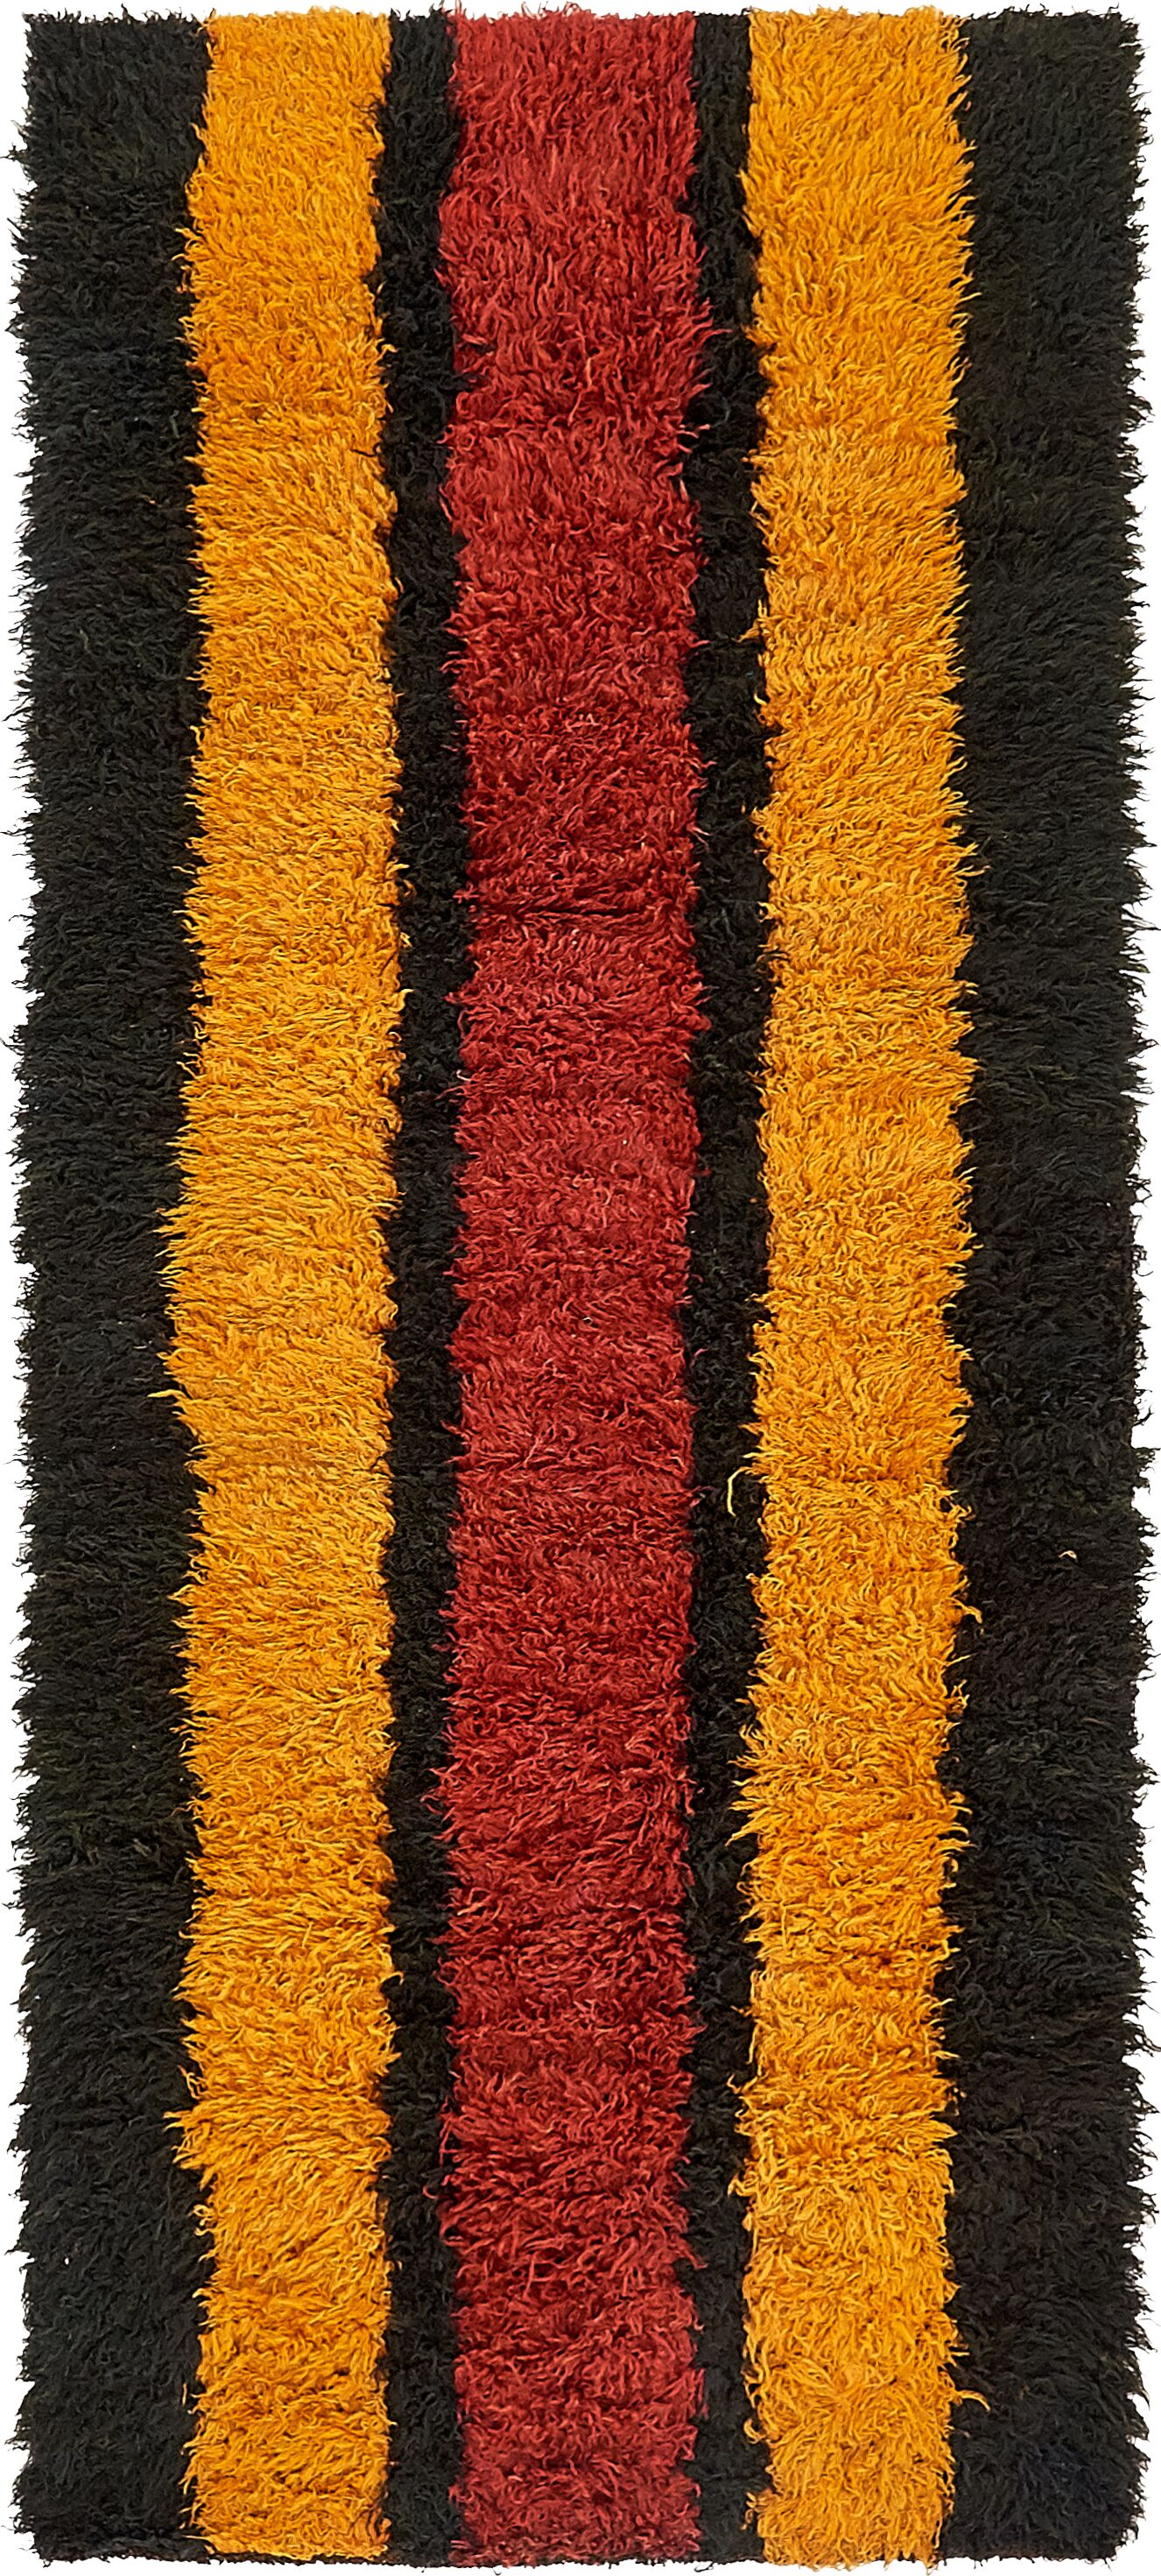 One-of-a-Kind Thirsk Hand-Knotted Wool Orange/Red/Black Area Rug